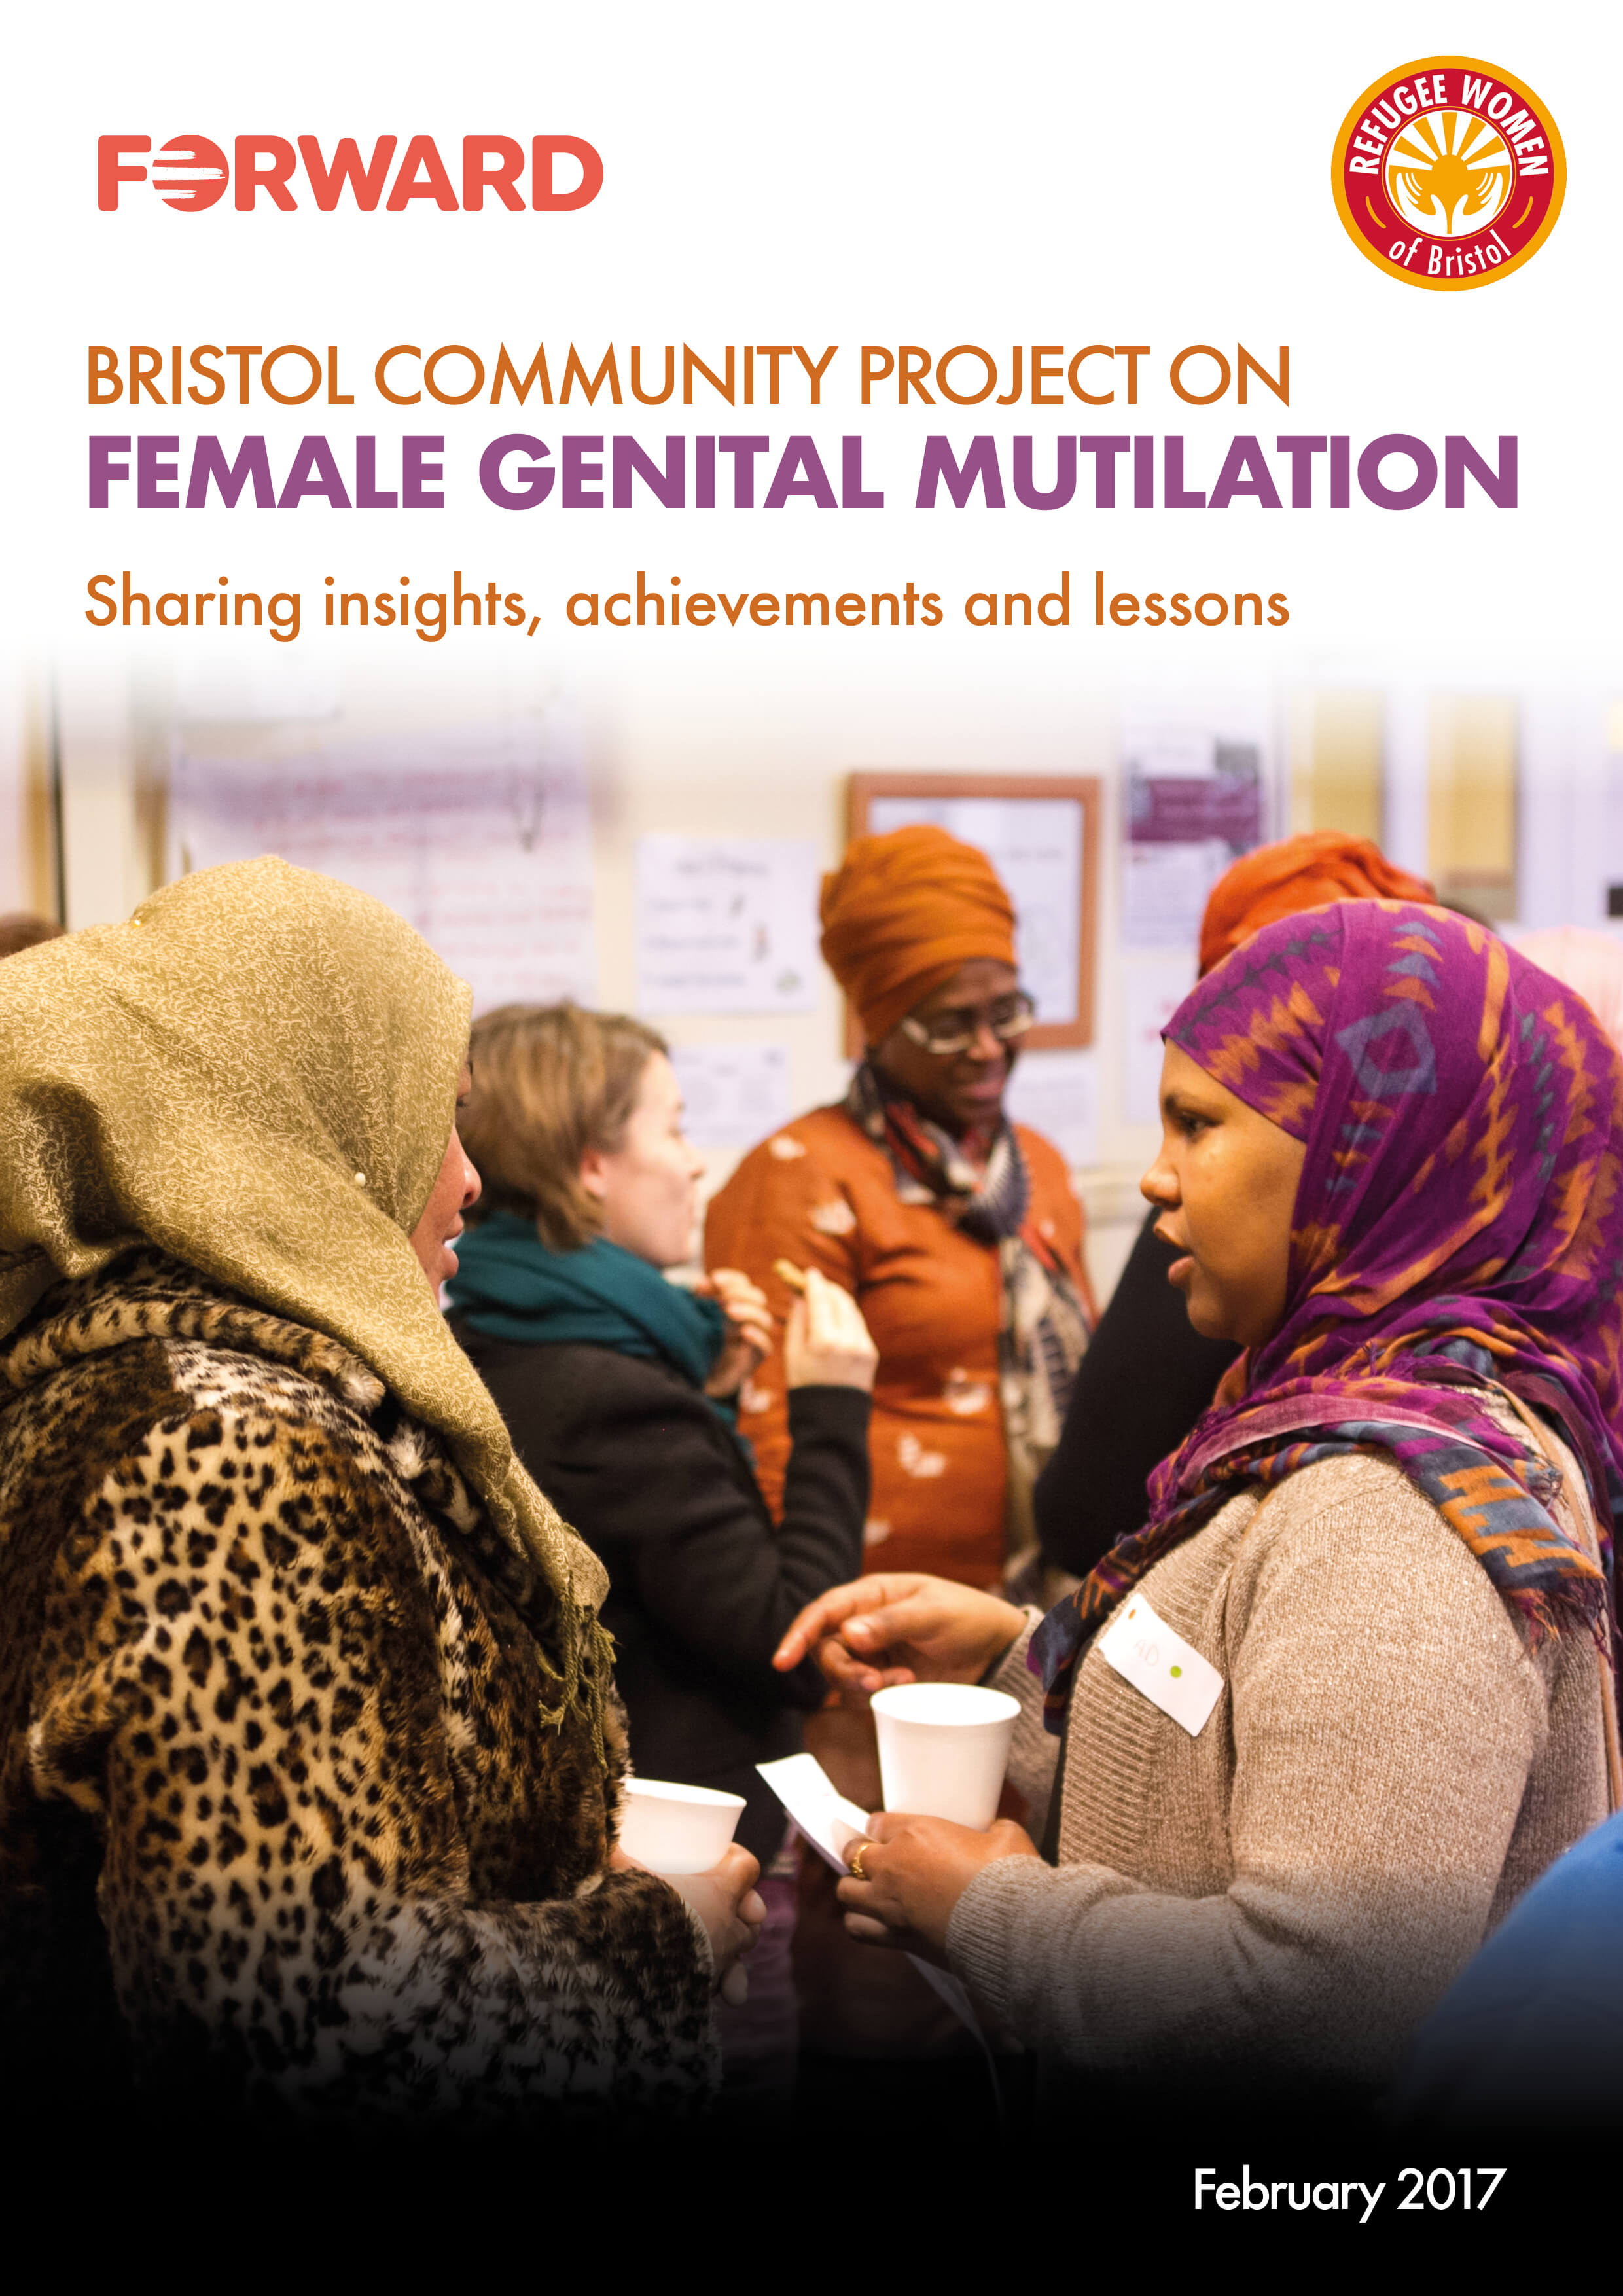 Bristol Community Project on FGM: Sharing insights, achievements and lessons